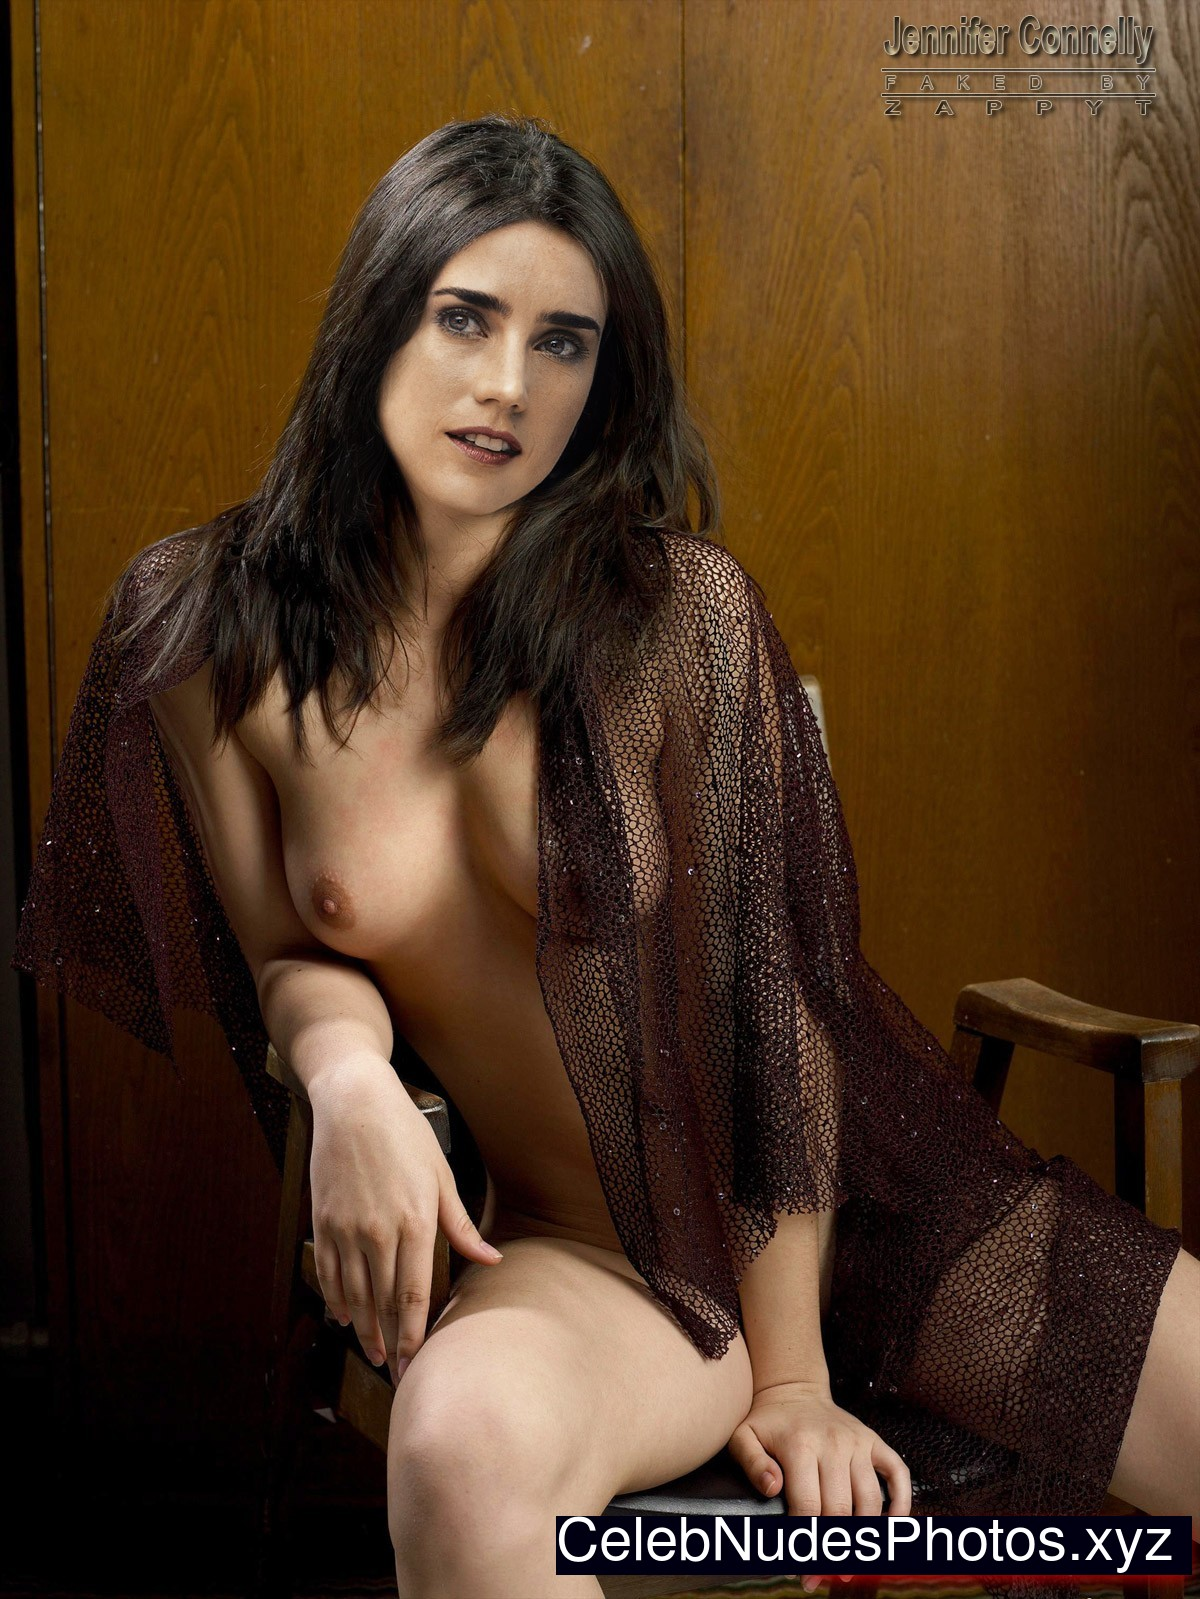 Talk, jennifer connelly nude movie apologise, but